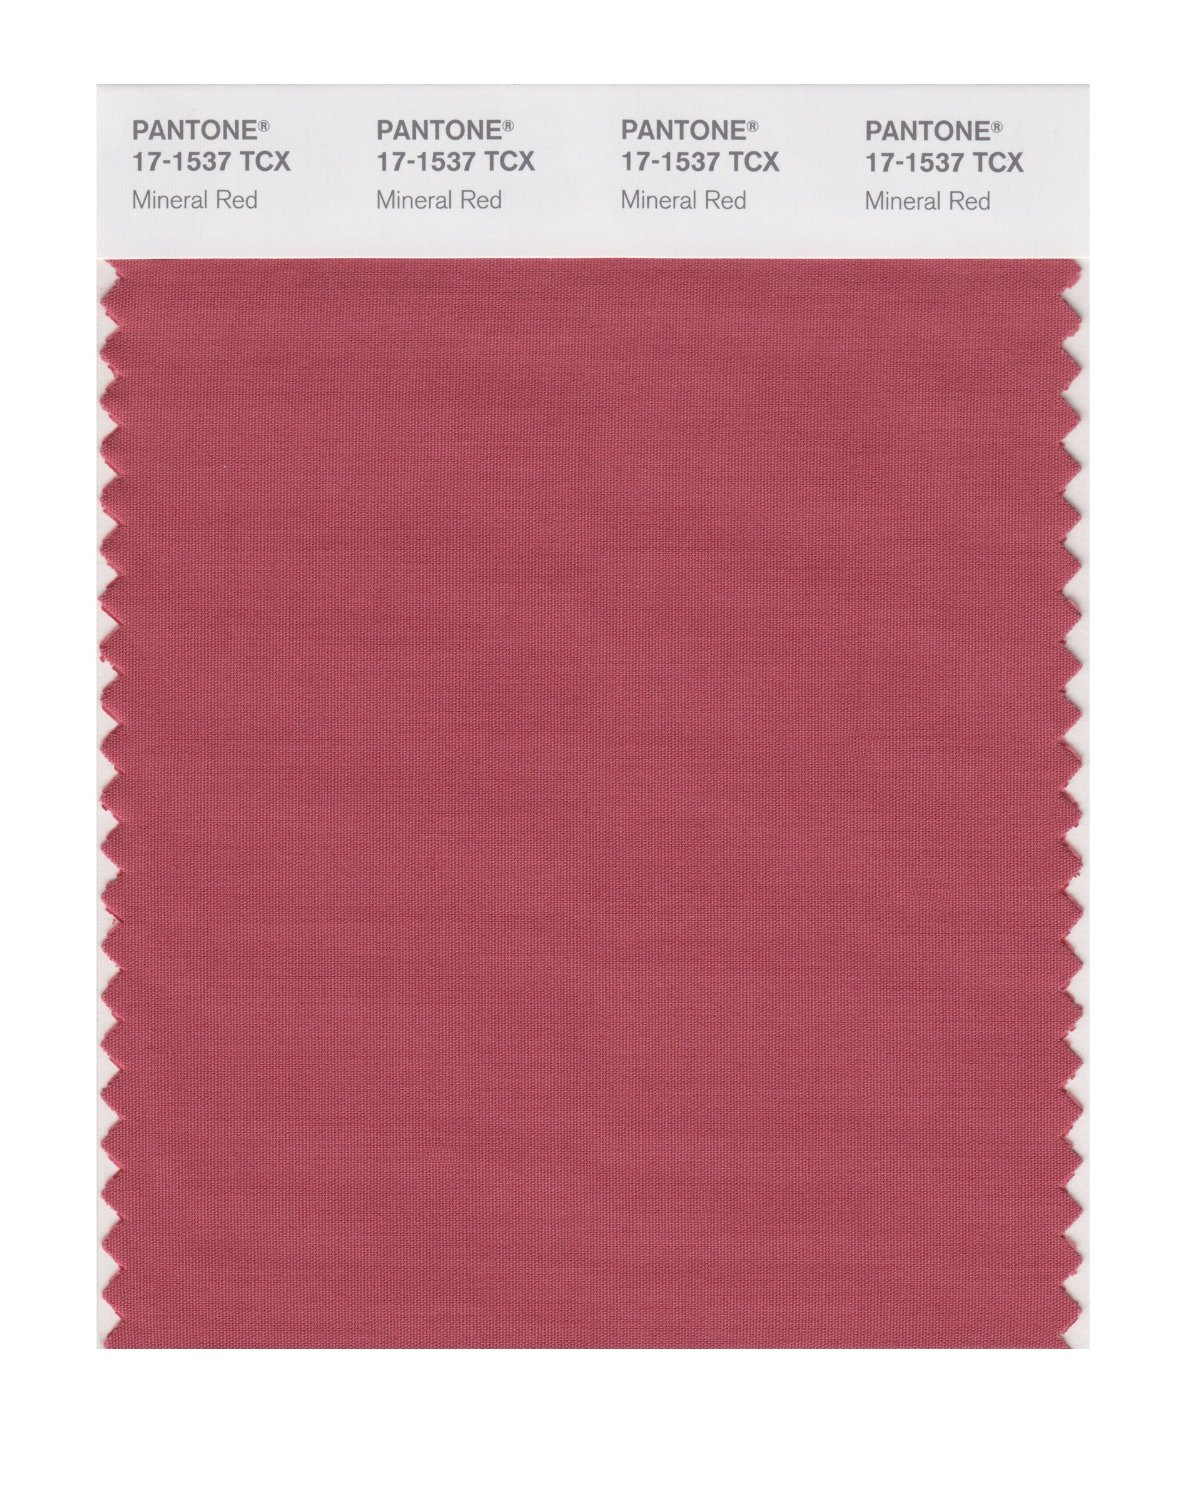 Pantone Smart Swatch 17-1537 Mineral Red